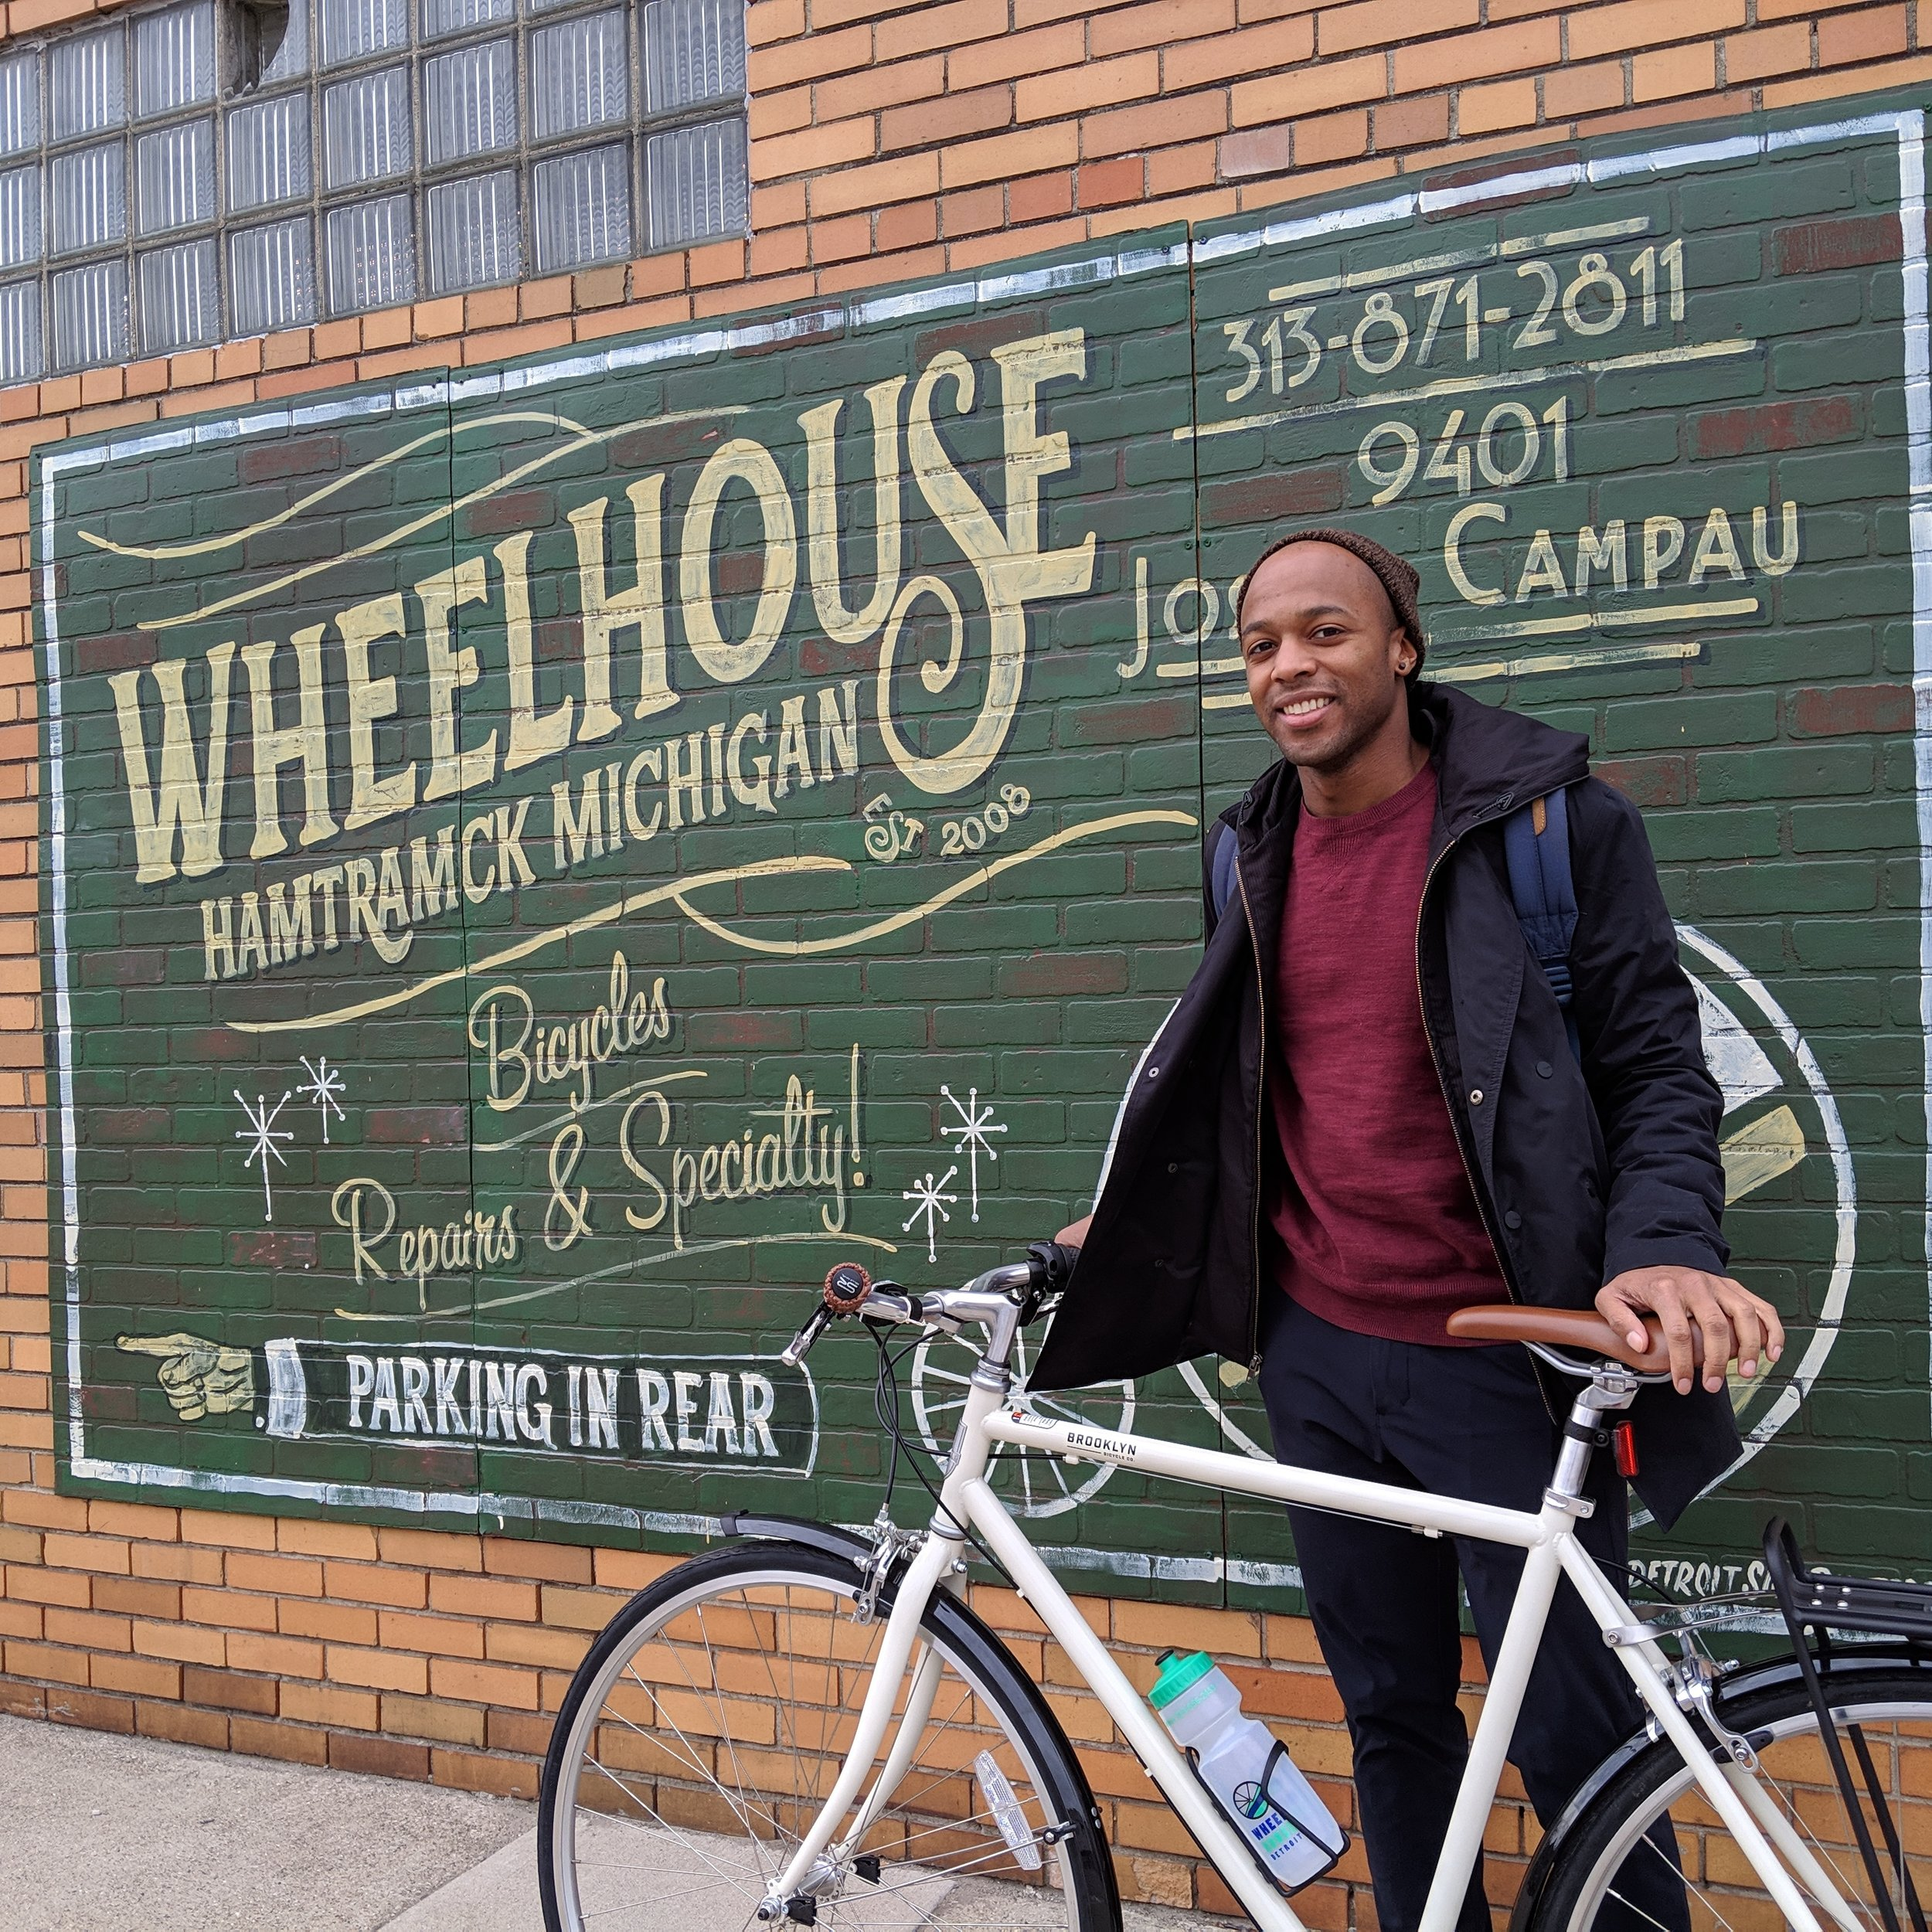 Shop Wheelhouse in Hamtramck for the    new    or    used    bicycle of your dreams!  Let us match you to your perfect ride. We carry hybrids and cruisers from Kona, Haro, Del Sol, and Brooklyn Bicycle Co.